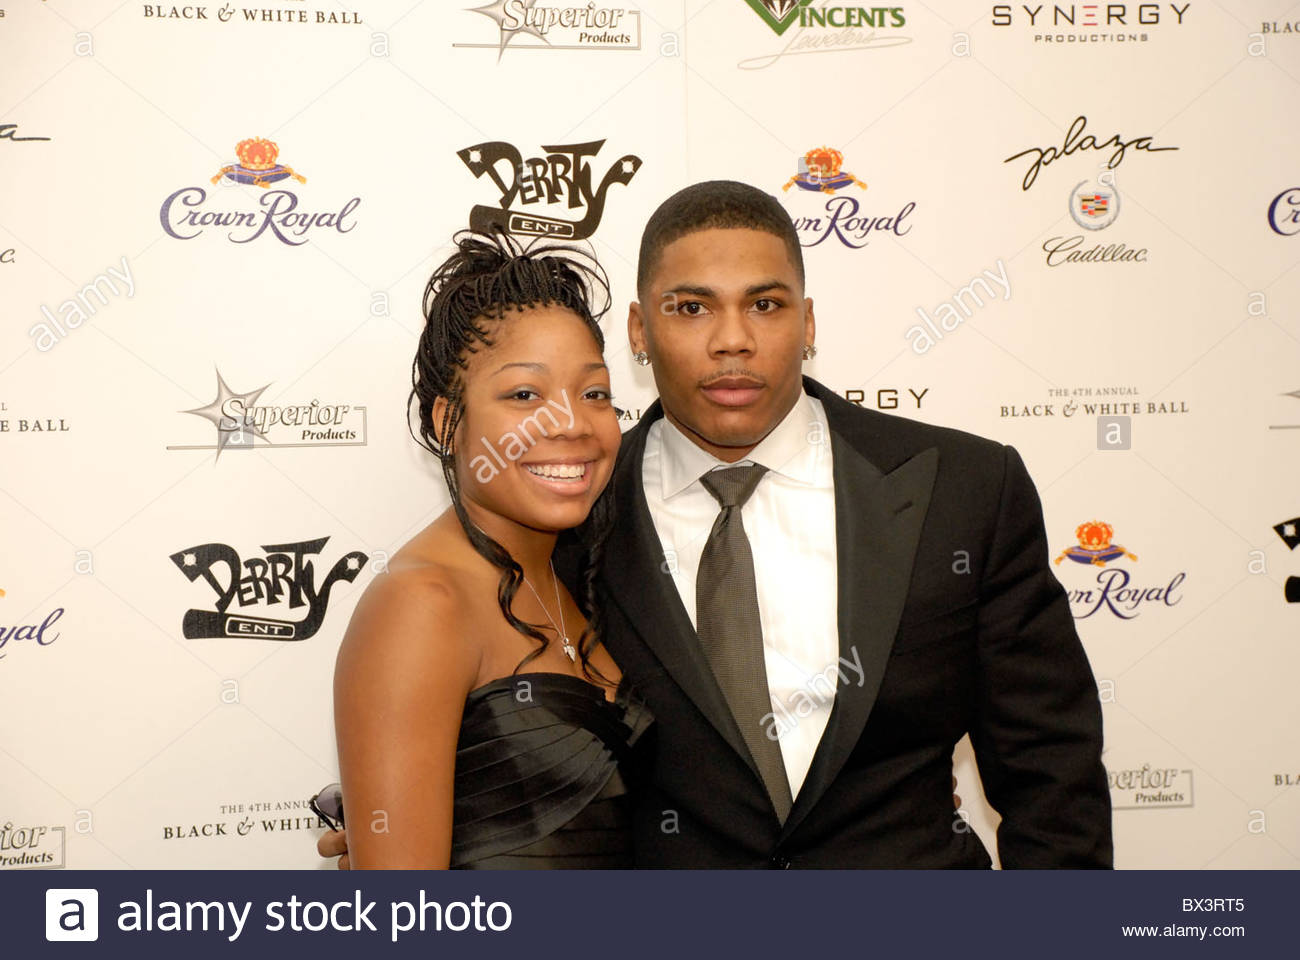 Nelly daughter chanelle nellys daughter chanel gun click for details